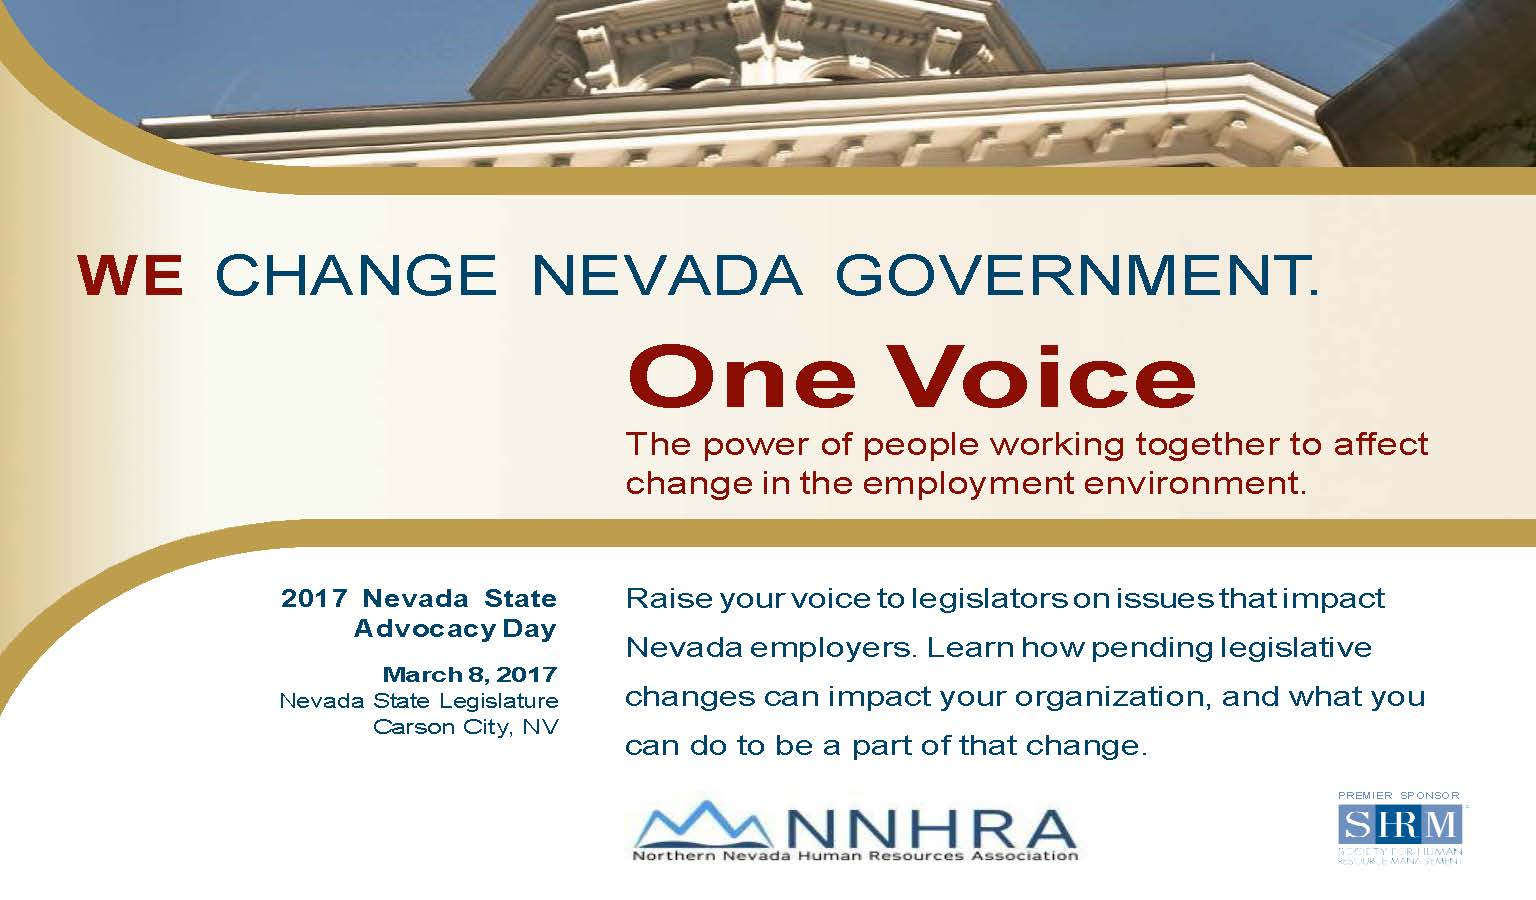 Northern Nevada Human Resources Association Postca